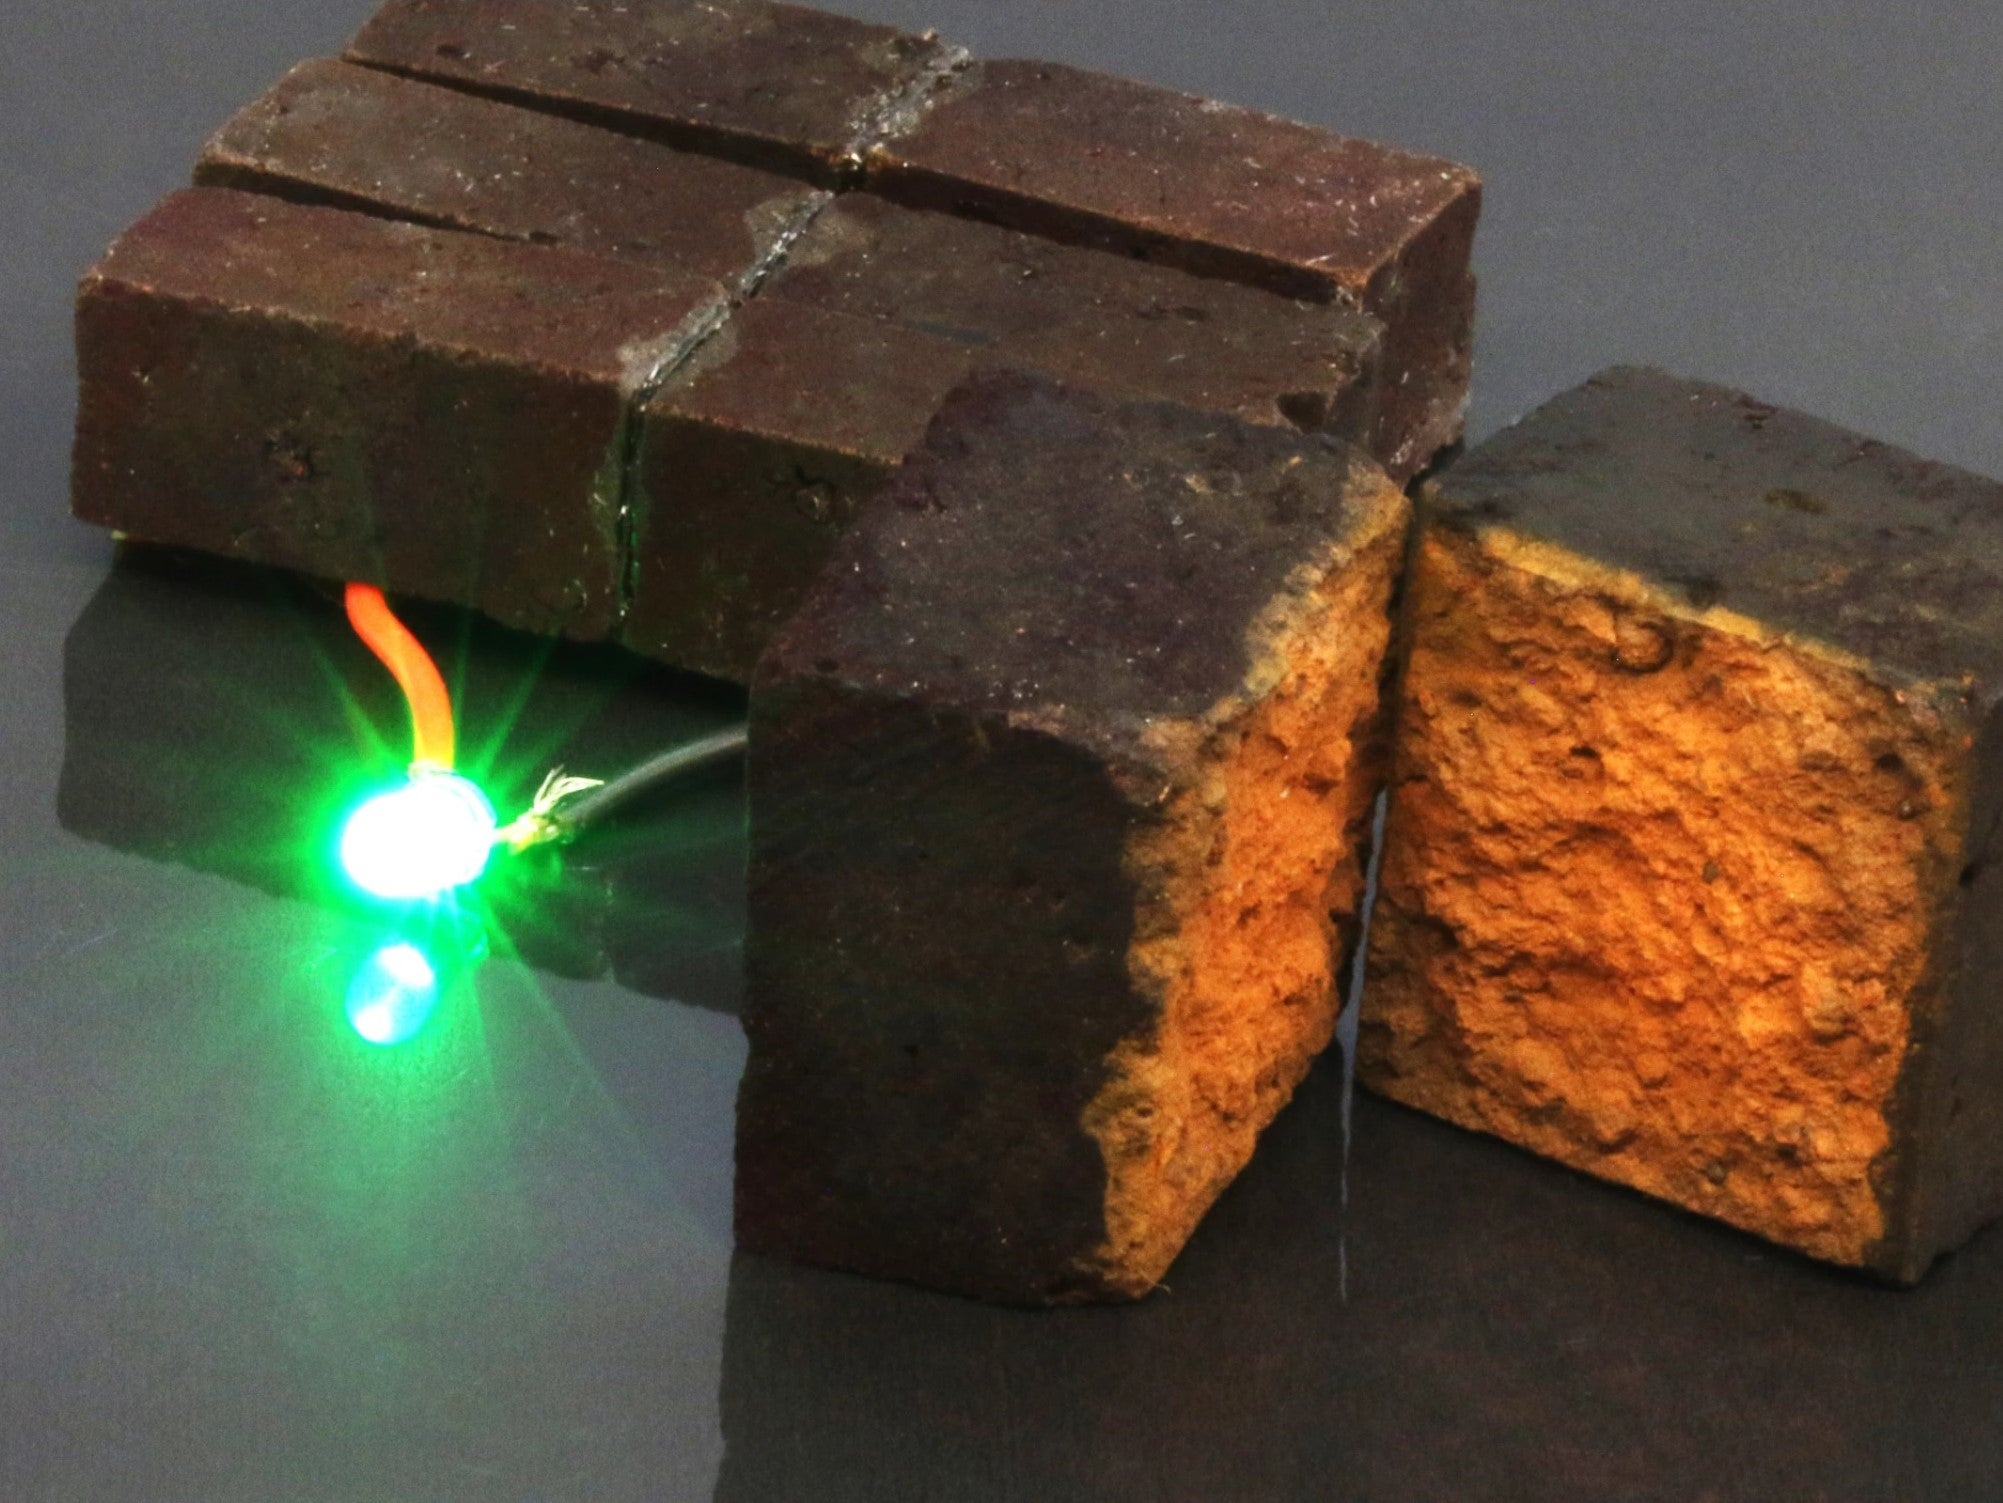 House bricks can be used to store energy like a battery